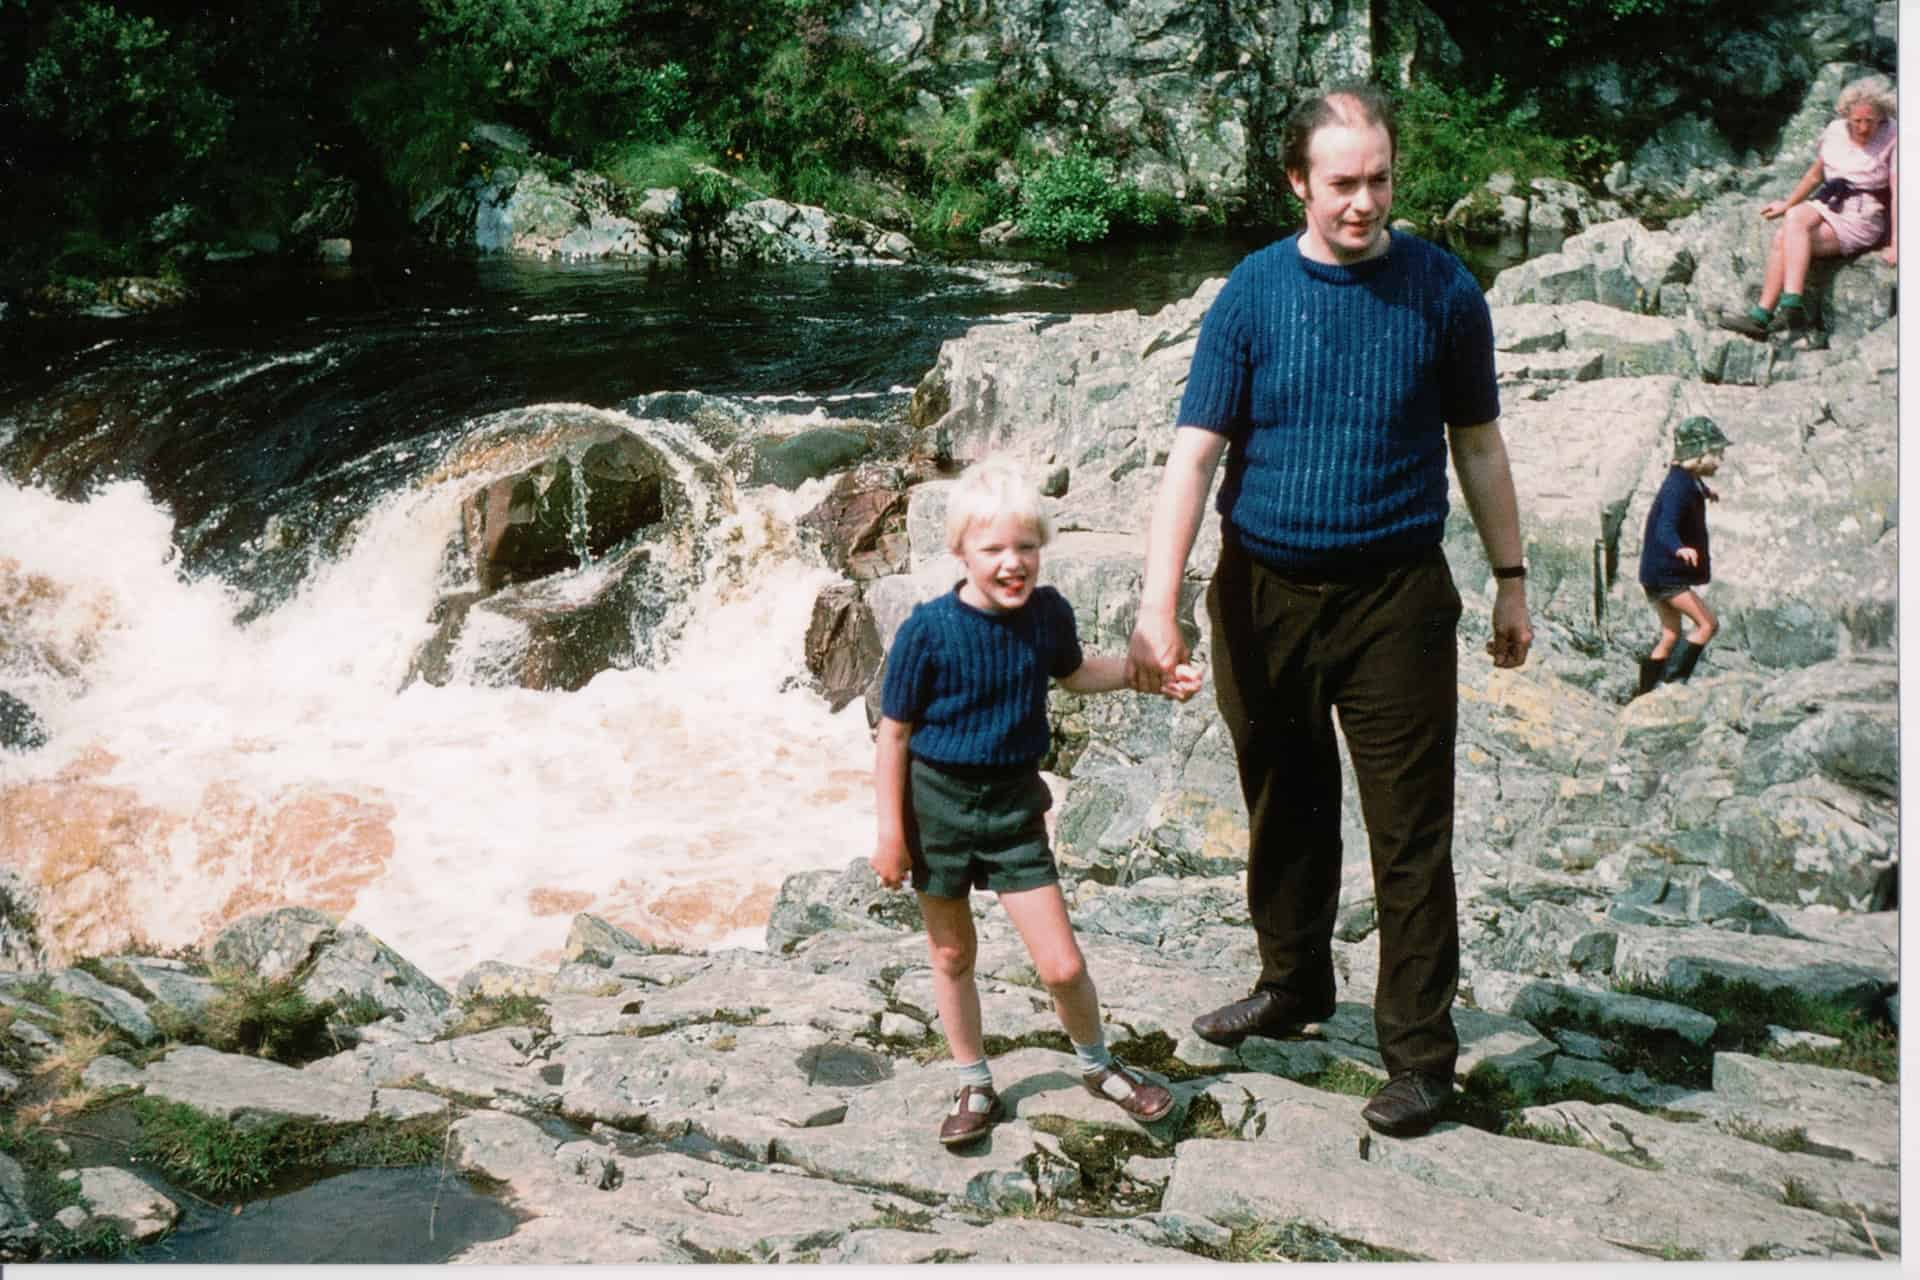 Peter and Conrad, probably at Betws-y-Coed, early 1970s.